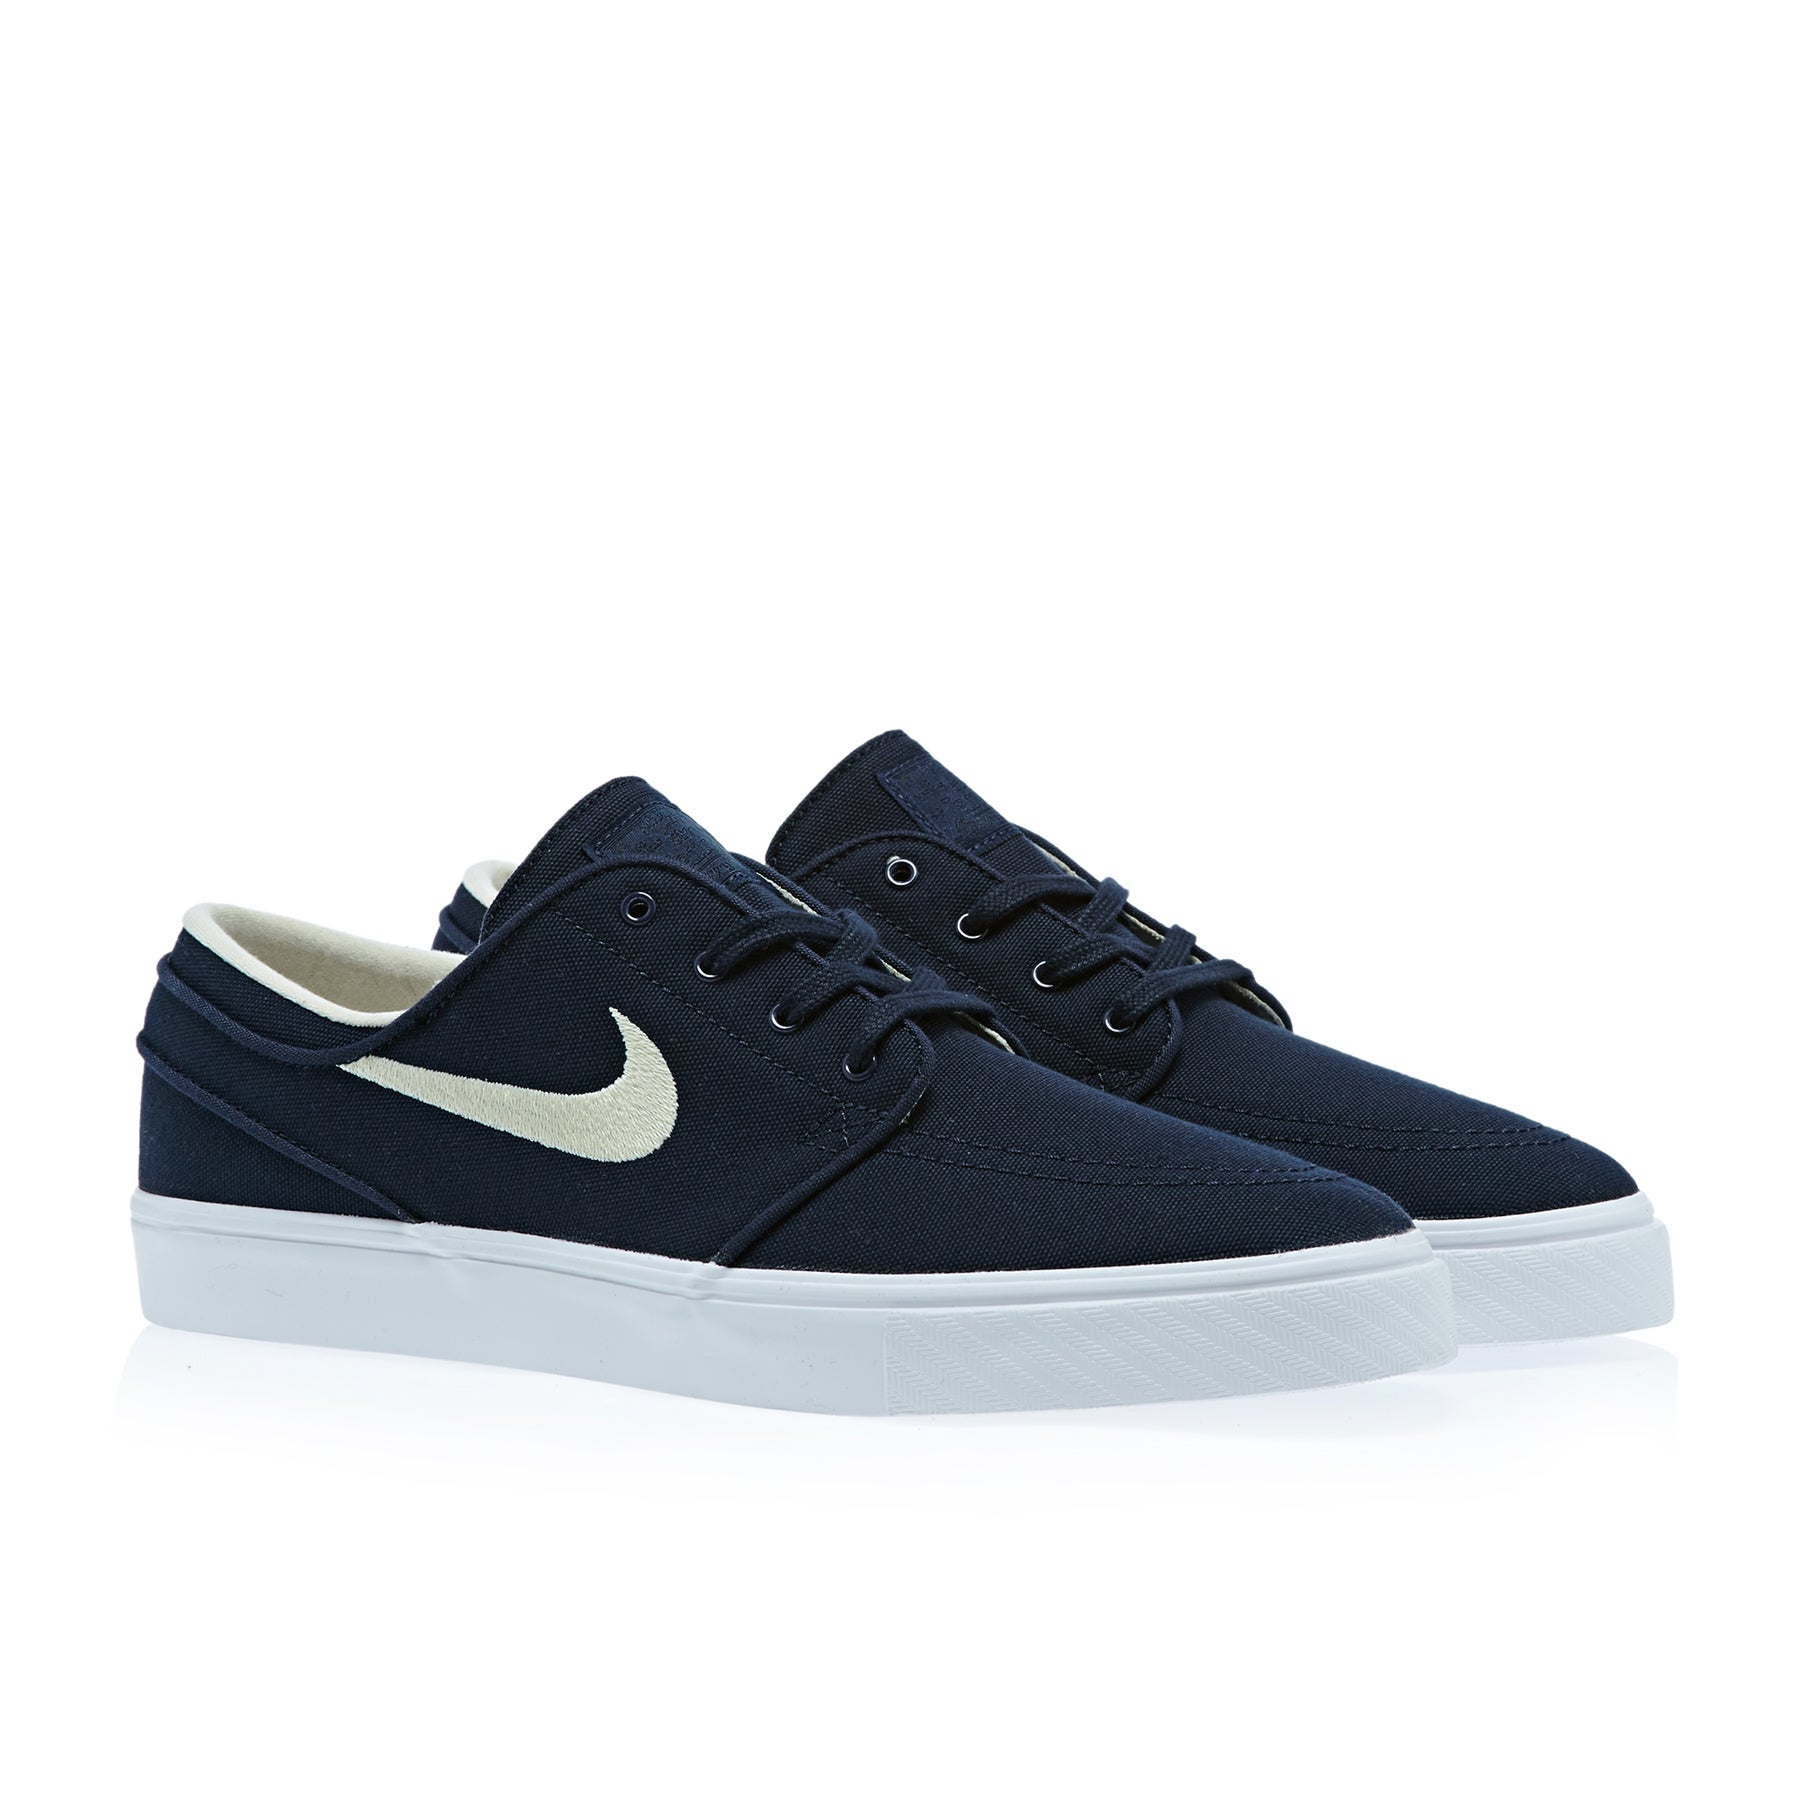 Nike Available Canvas Surfdome Sb Stefan Zoom From Janoski Shoes g76mIYyfbv